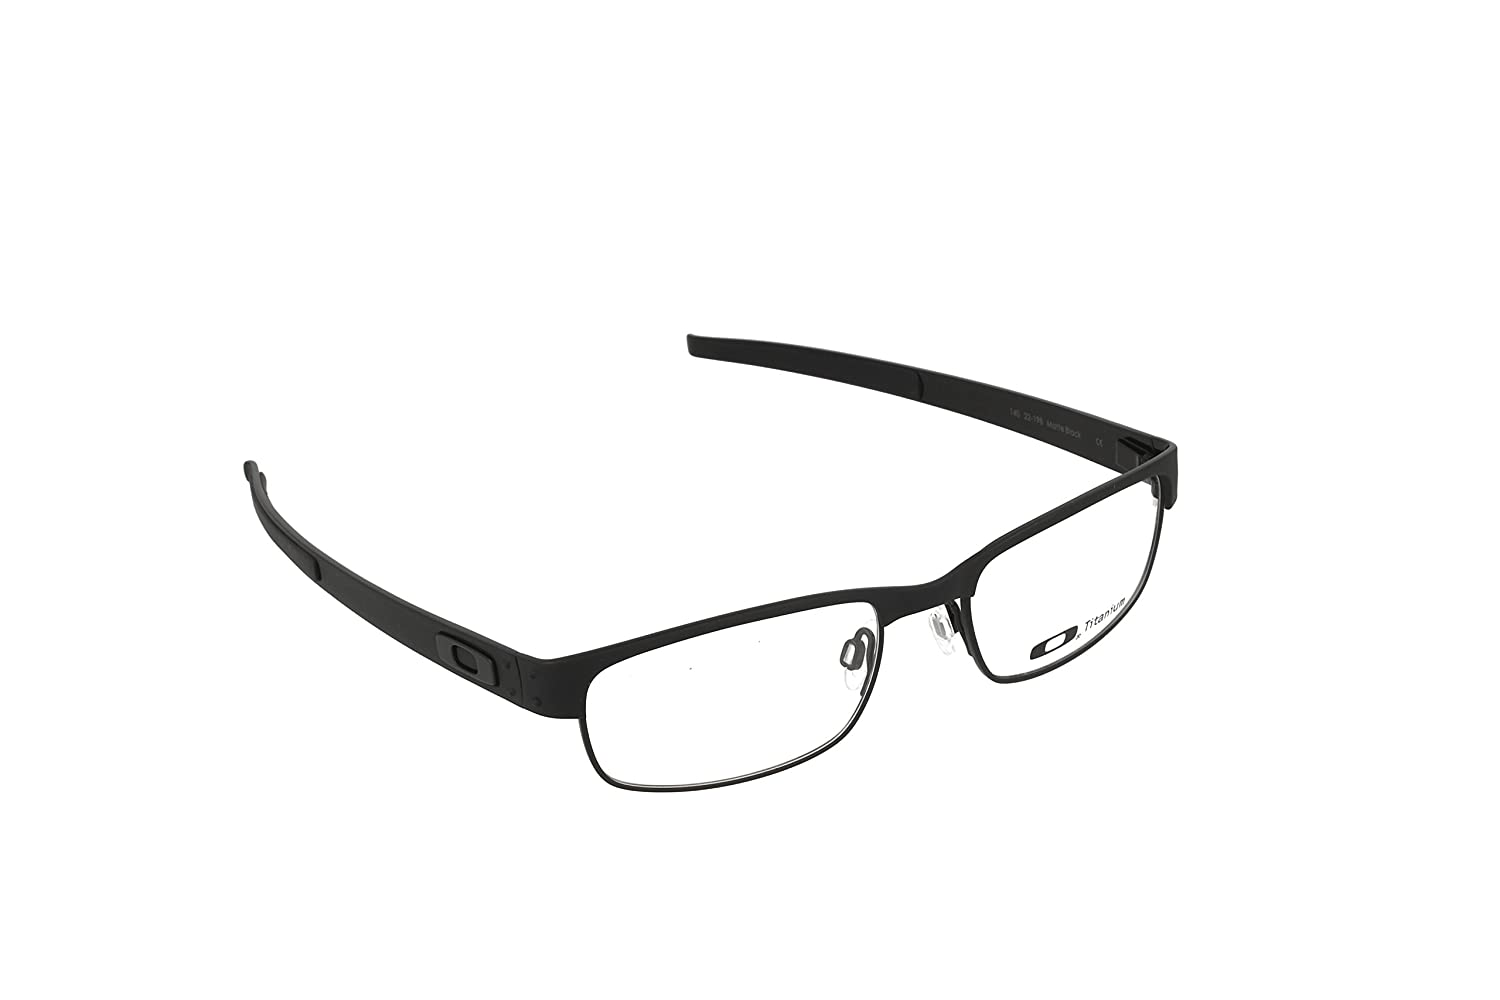 Amazon.com: Oakley Carbon Plate (53) Mens Eyeglass Frames: Shoes